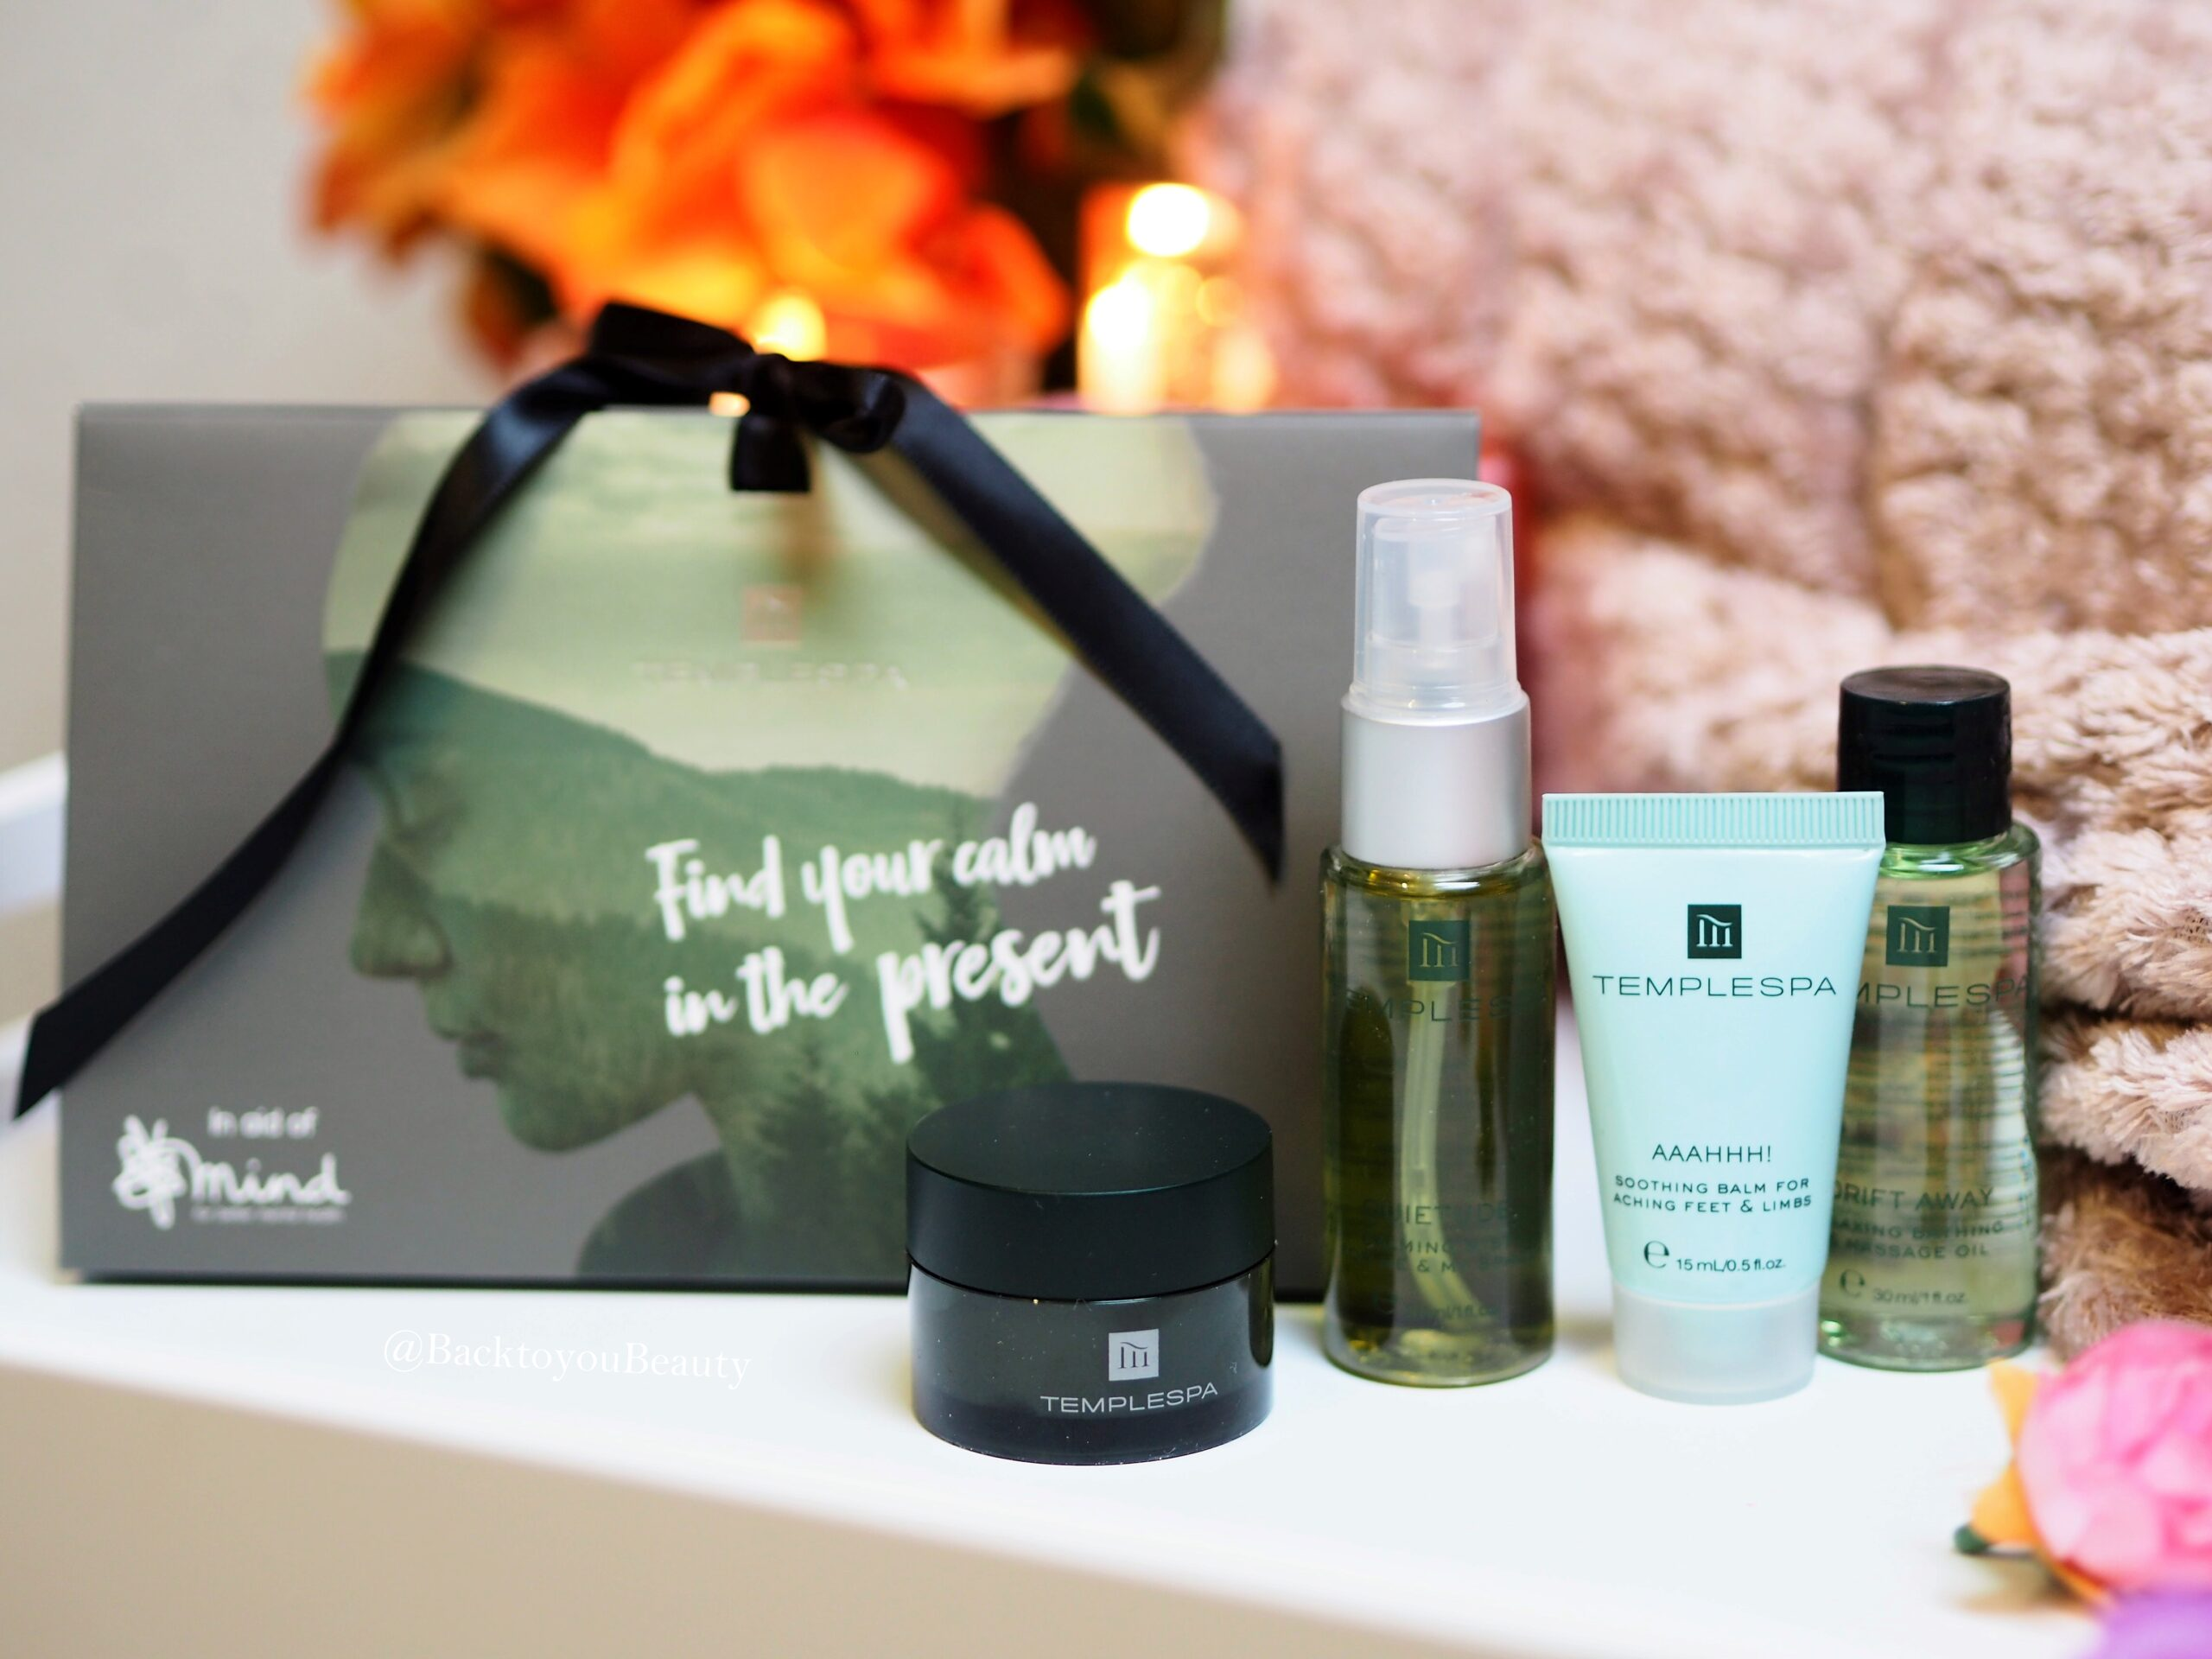 Find your calm gift set